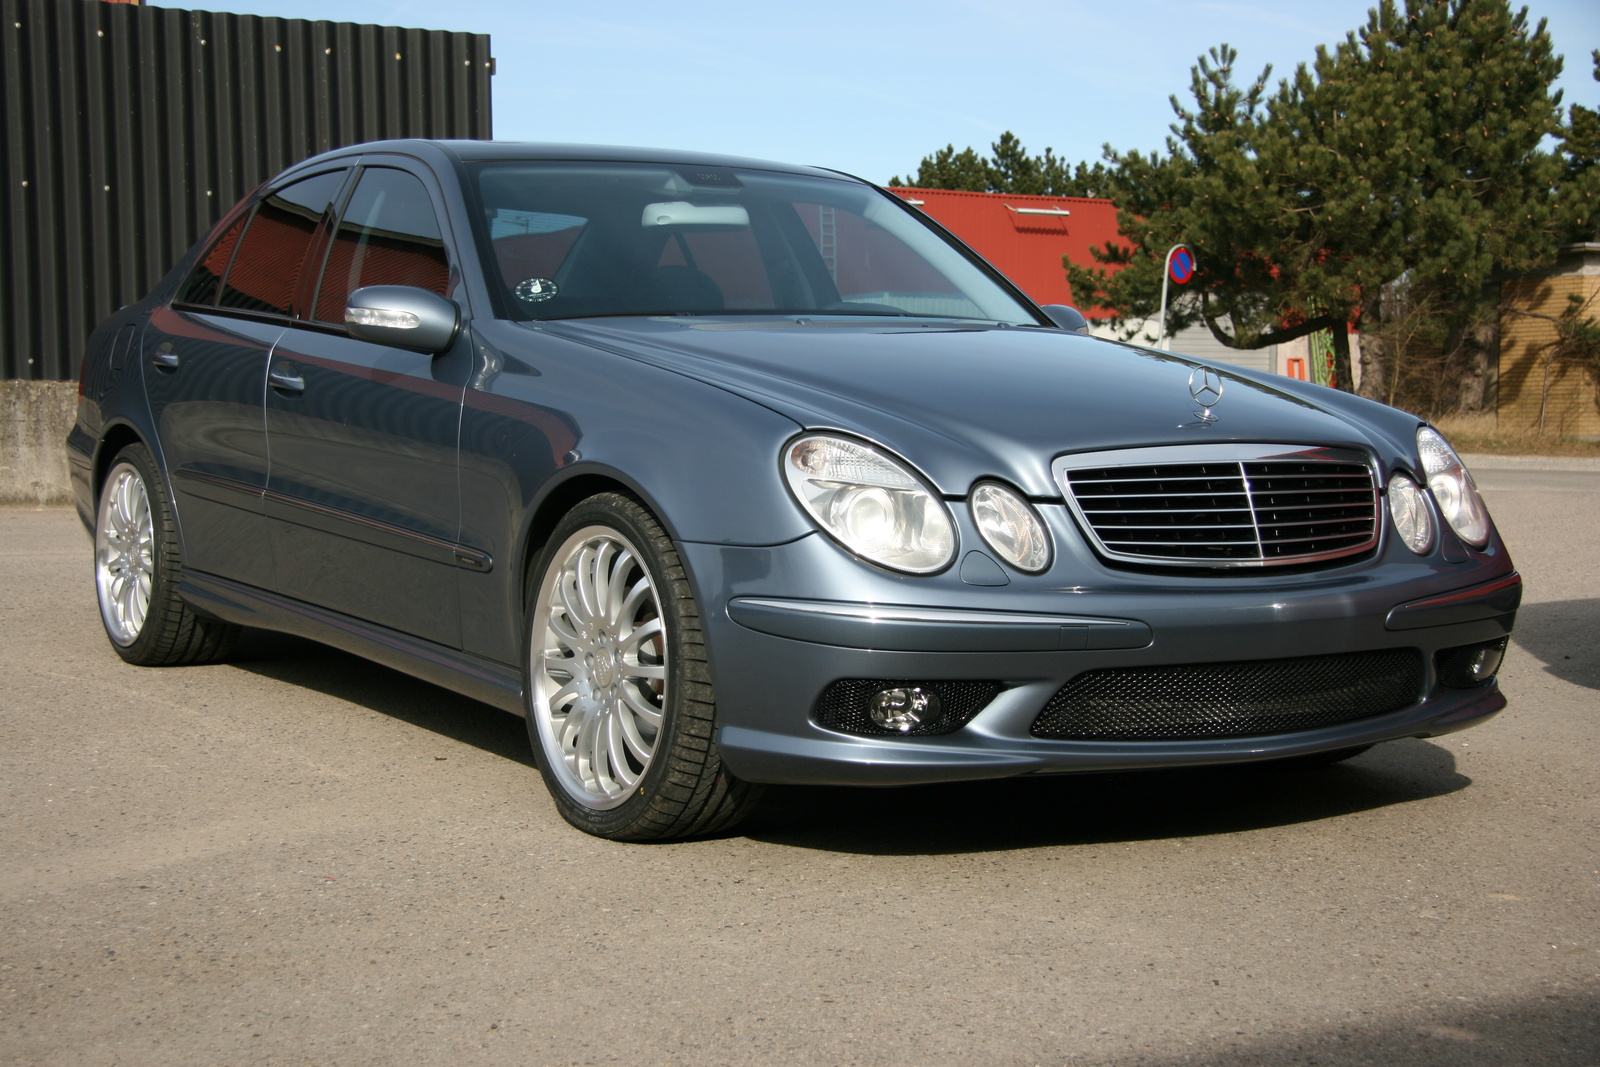 2004 mercedes benz e320 wagon reliability. Black Bedroom Furniture Sets. Home Design Ideas